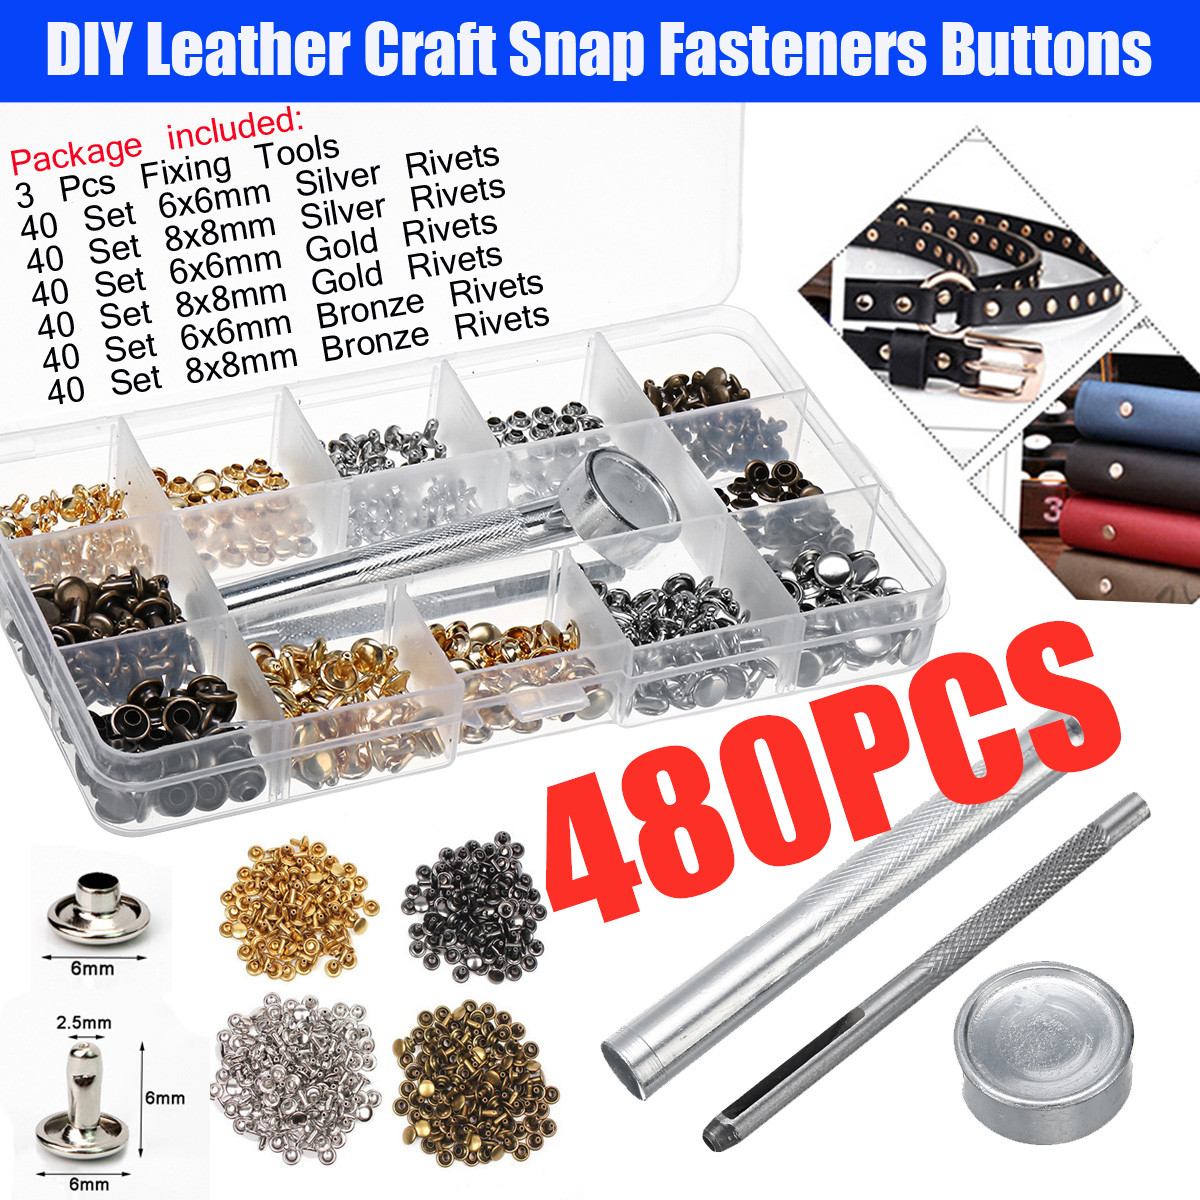 480 Pcs/Lot DIY Leather Craft Snap Fasteners Buttons Copper Antique Brass  Double Cap Sewing Rivet Punk Bag